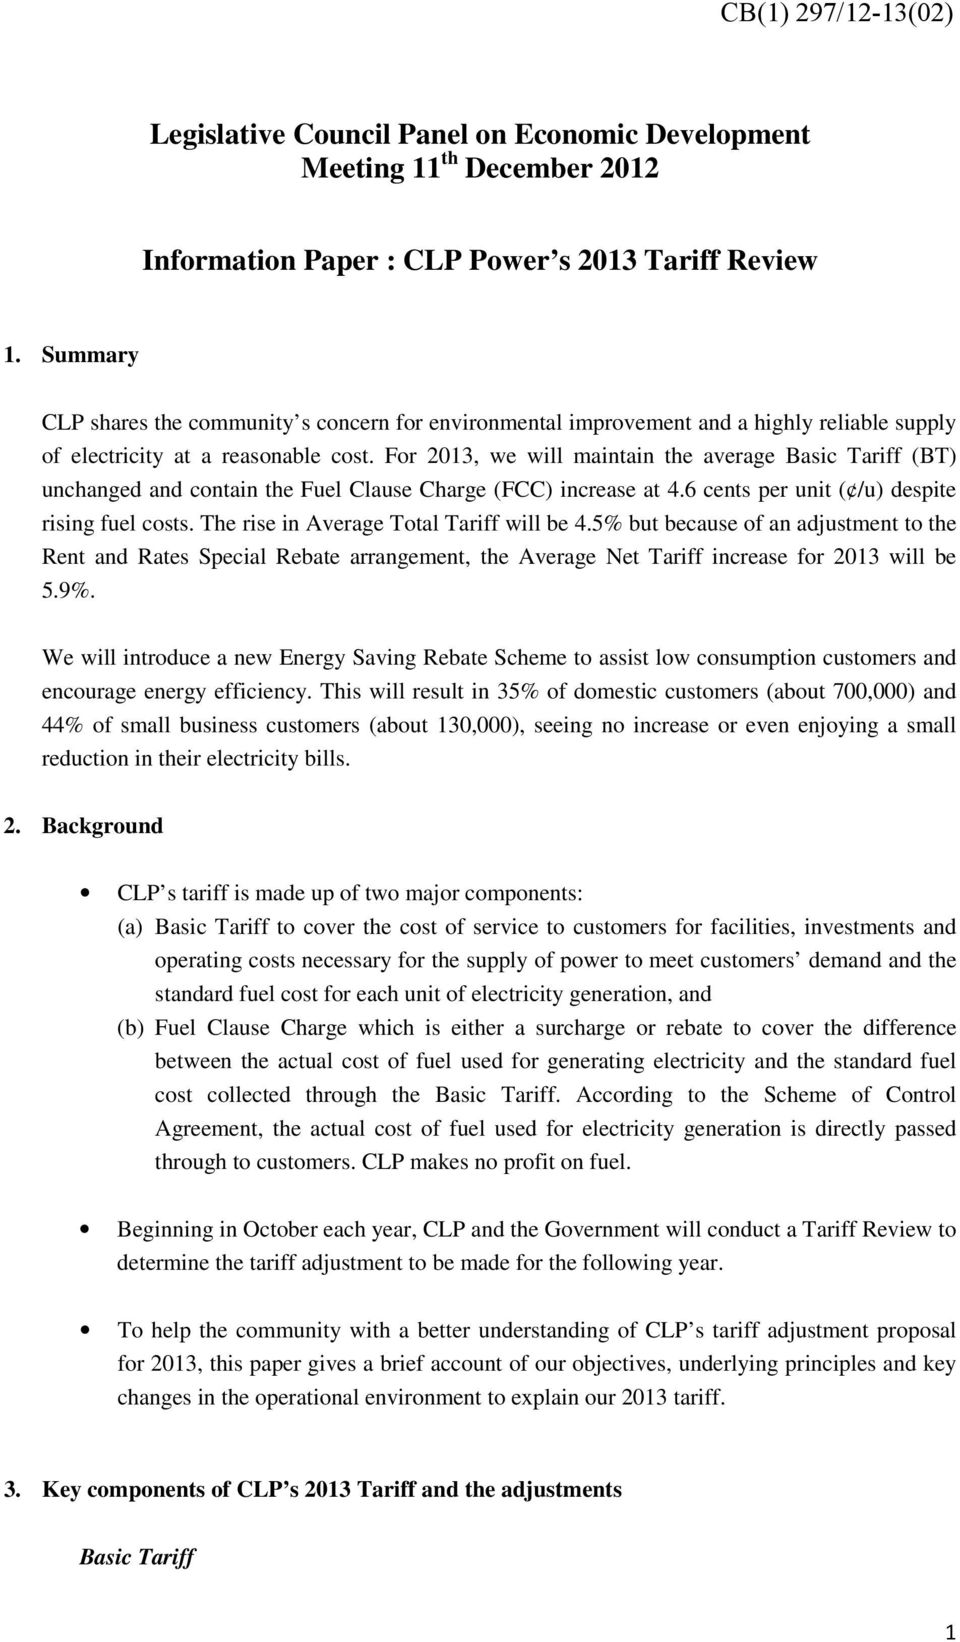 For 2013, we will maintain the average Basic Tariff (BT) unchanged and contain the Fuel Clause Charge (FCC) increase at 4.6 cents per unit ( /u) despite rising fuel costs.